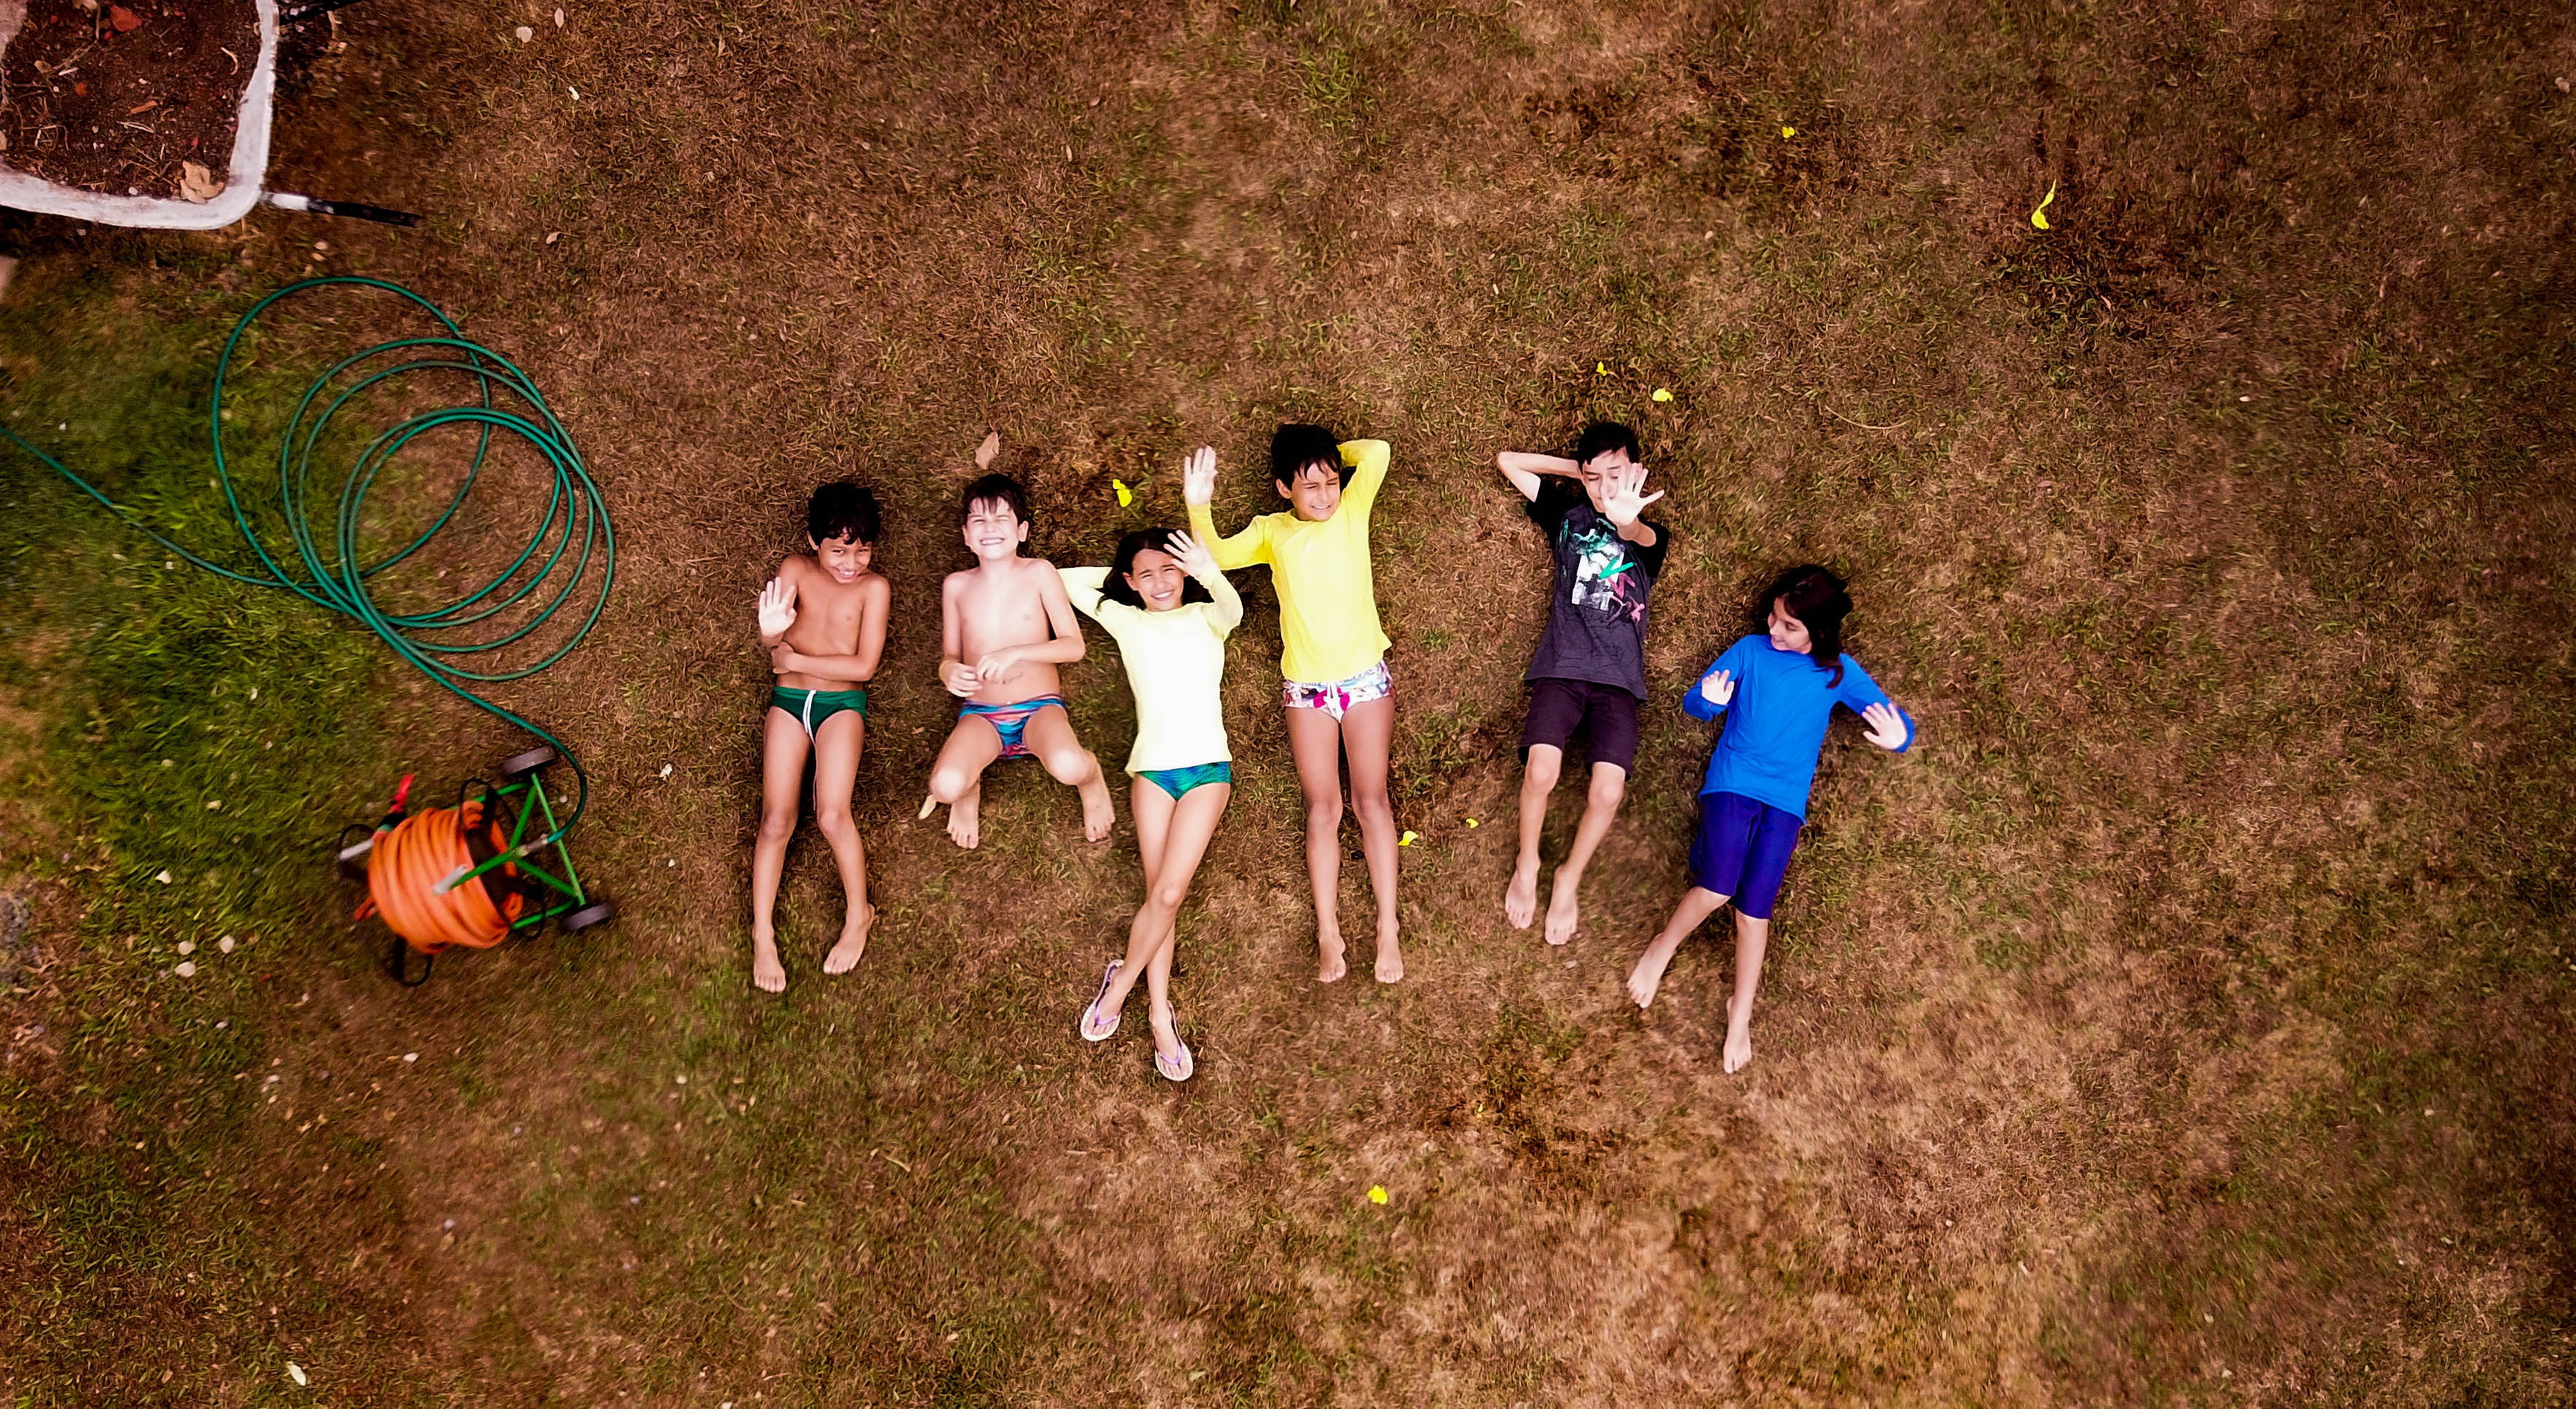 group of kids beside garden hose reel